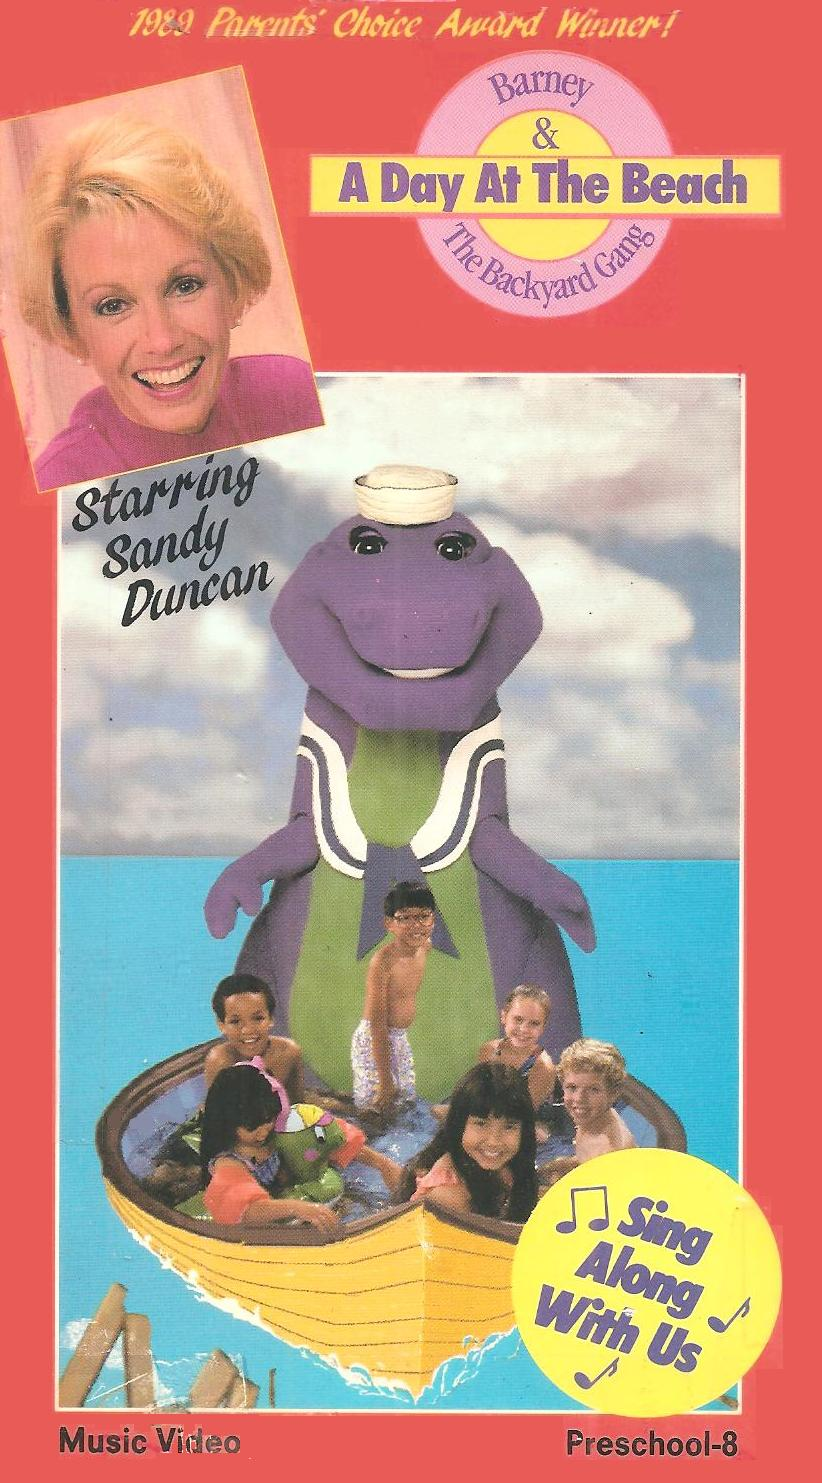 image a day at the beach original cover jpg barney wiki